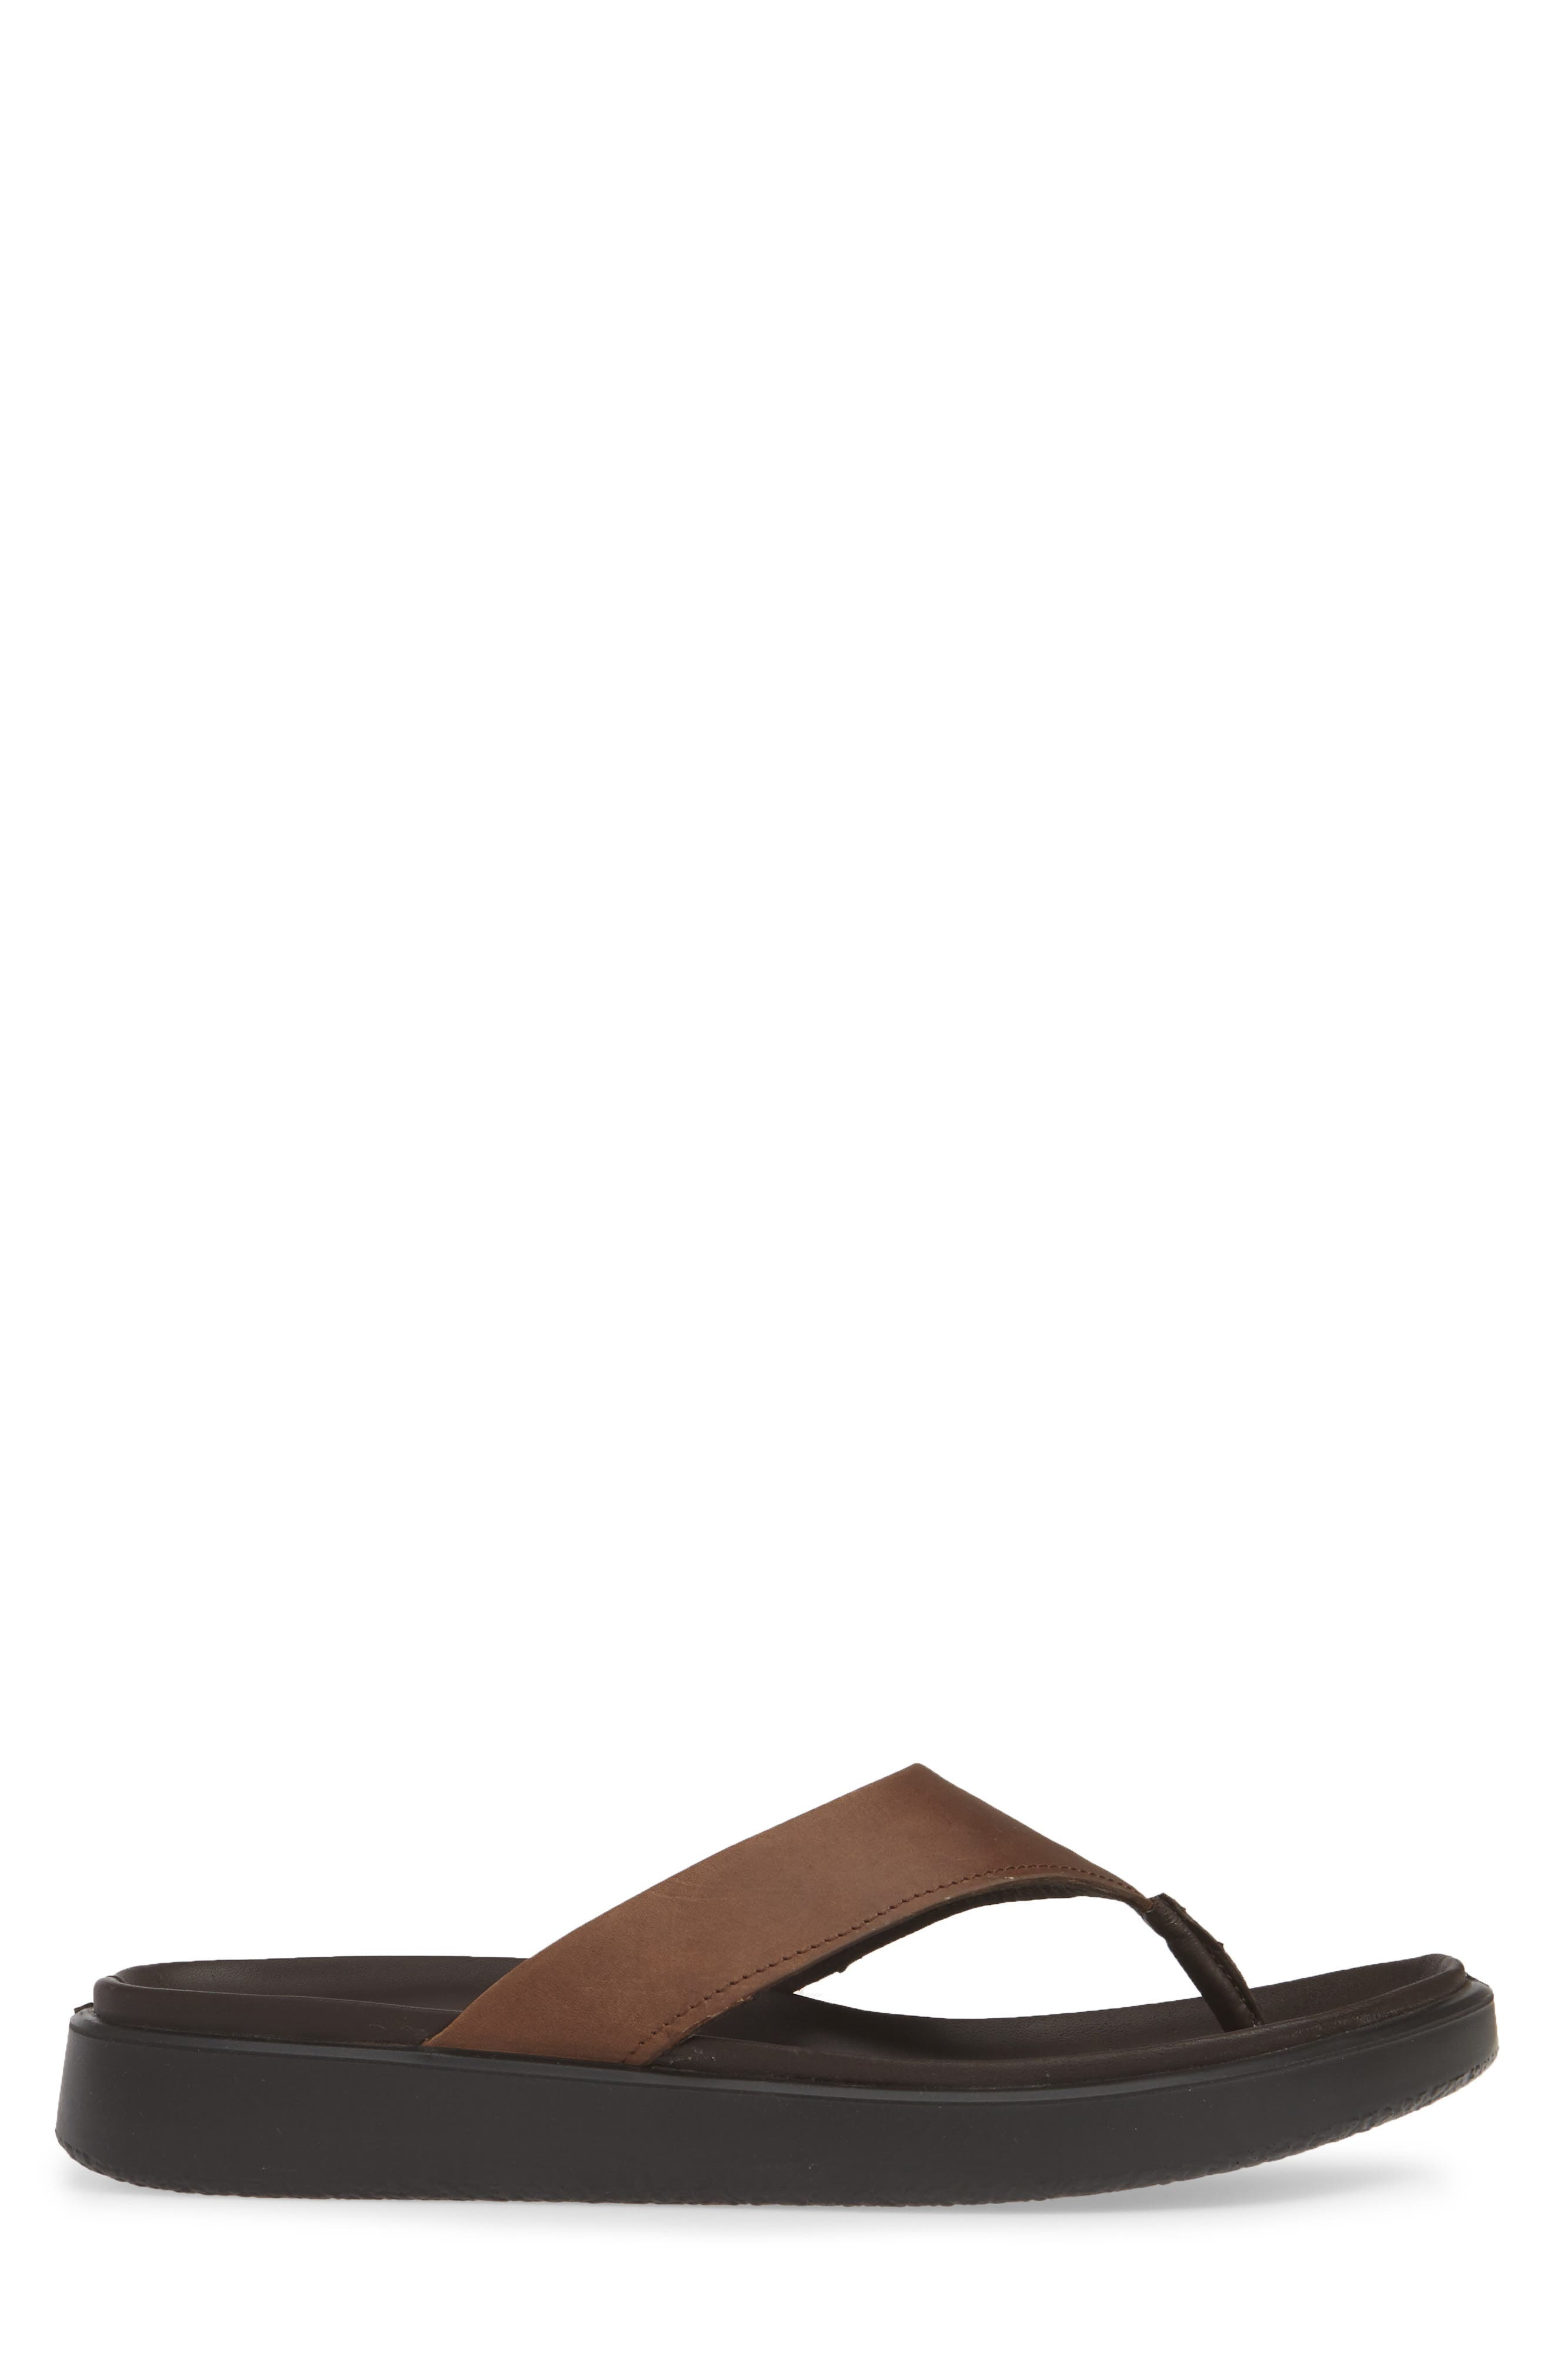 ECCO, Flowt LX Flip Flop, Alternate thumbnail 3, color, COCOA BROWN OILED NUBUCK